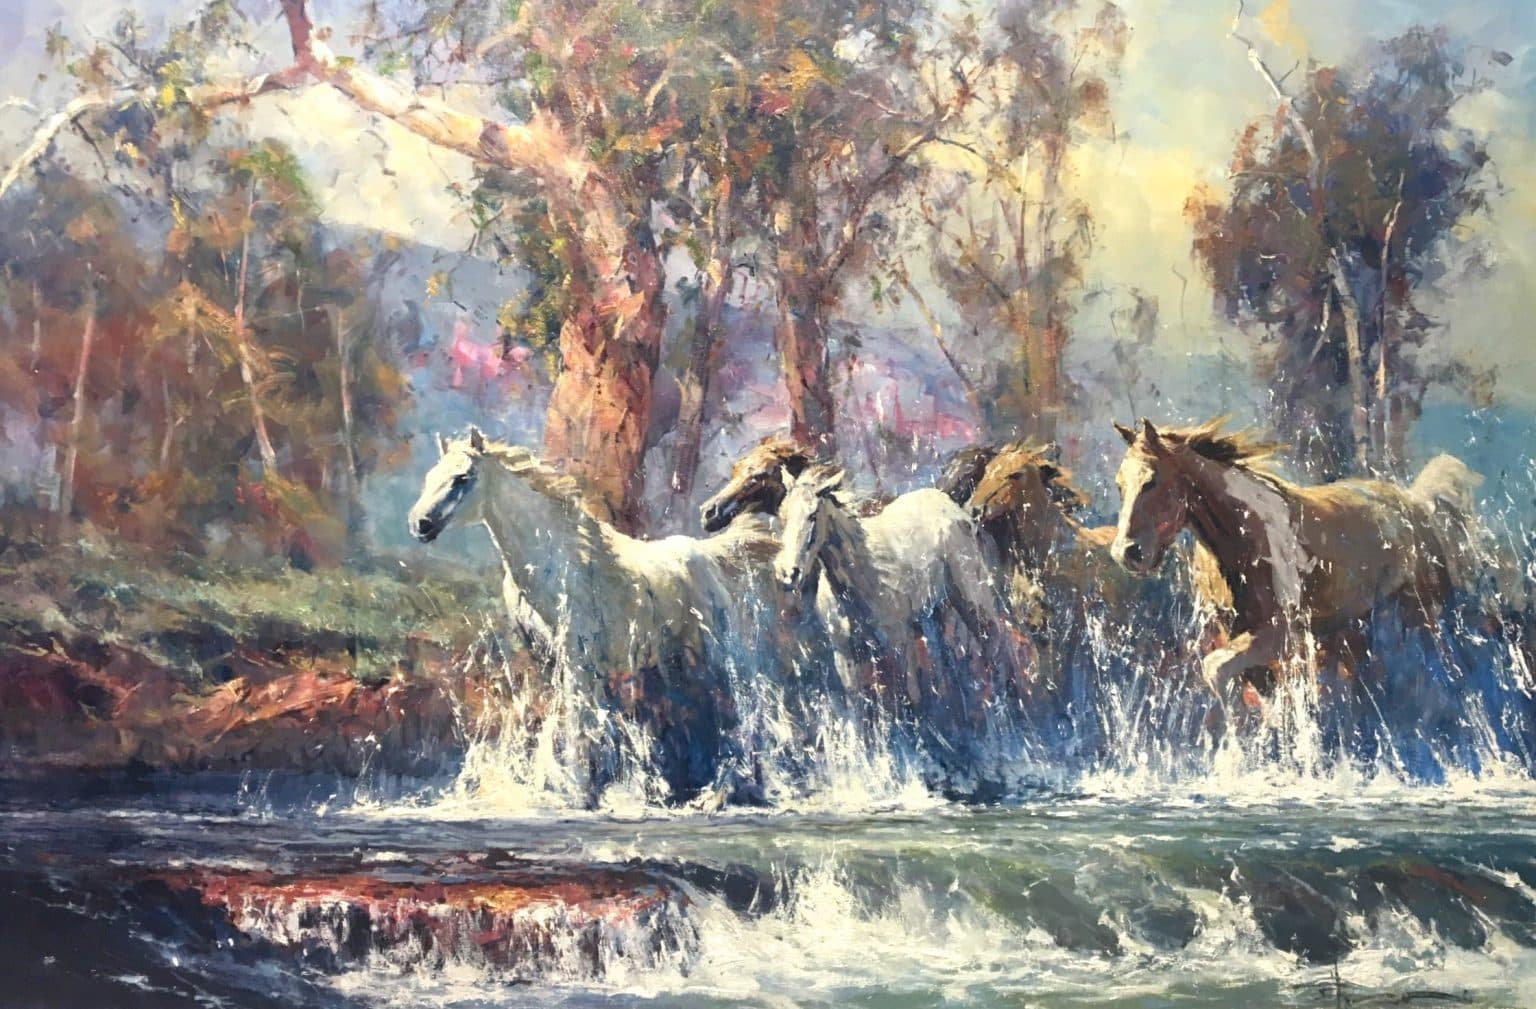 Robert Hagan's Horses Crossing oil painting product